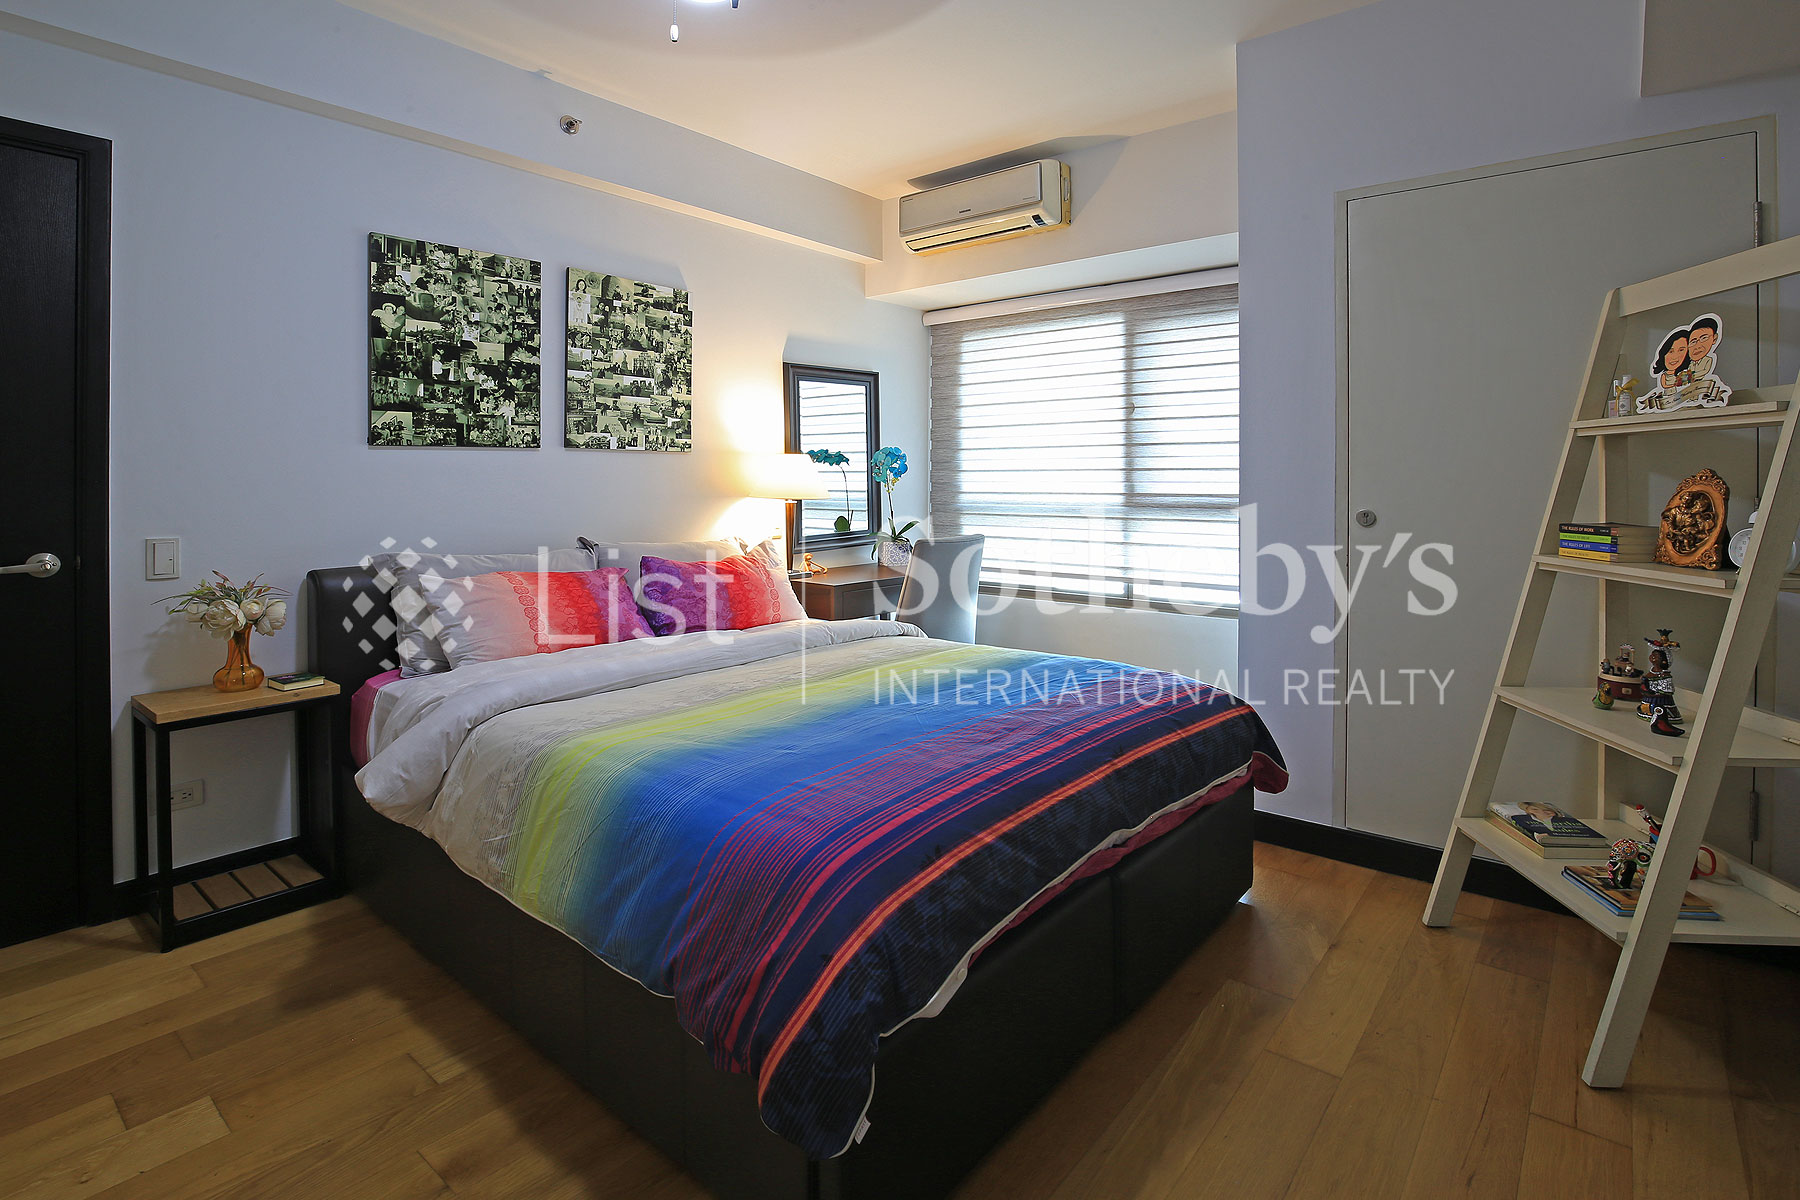 Additional photo for property listing at 1 Bedroom Modern design in TRAG Makati, Luzon Philippines